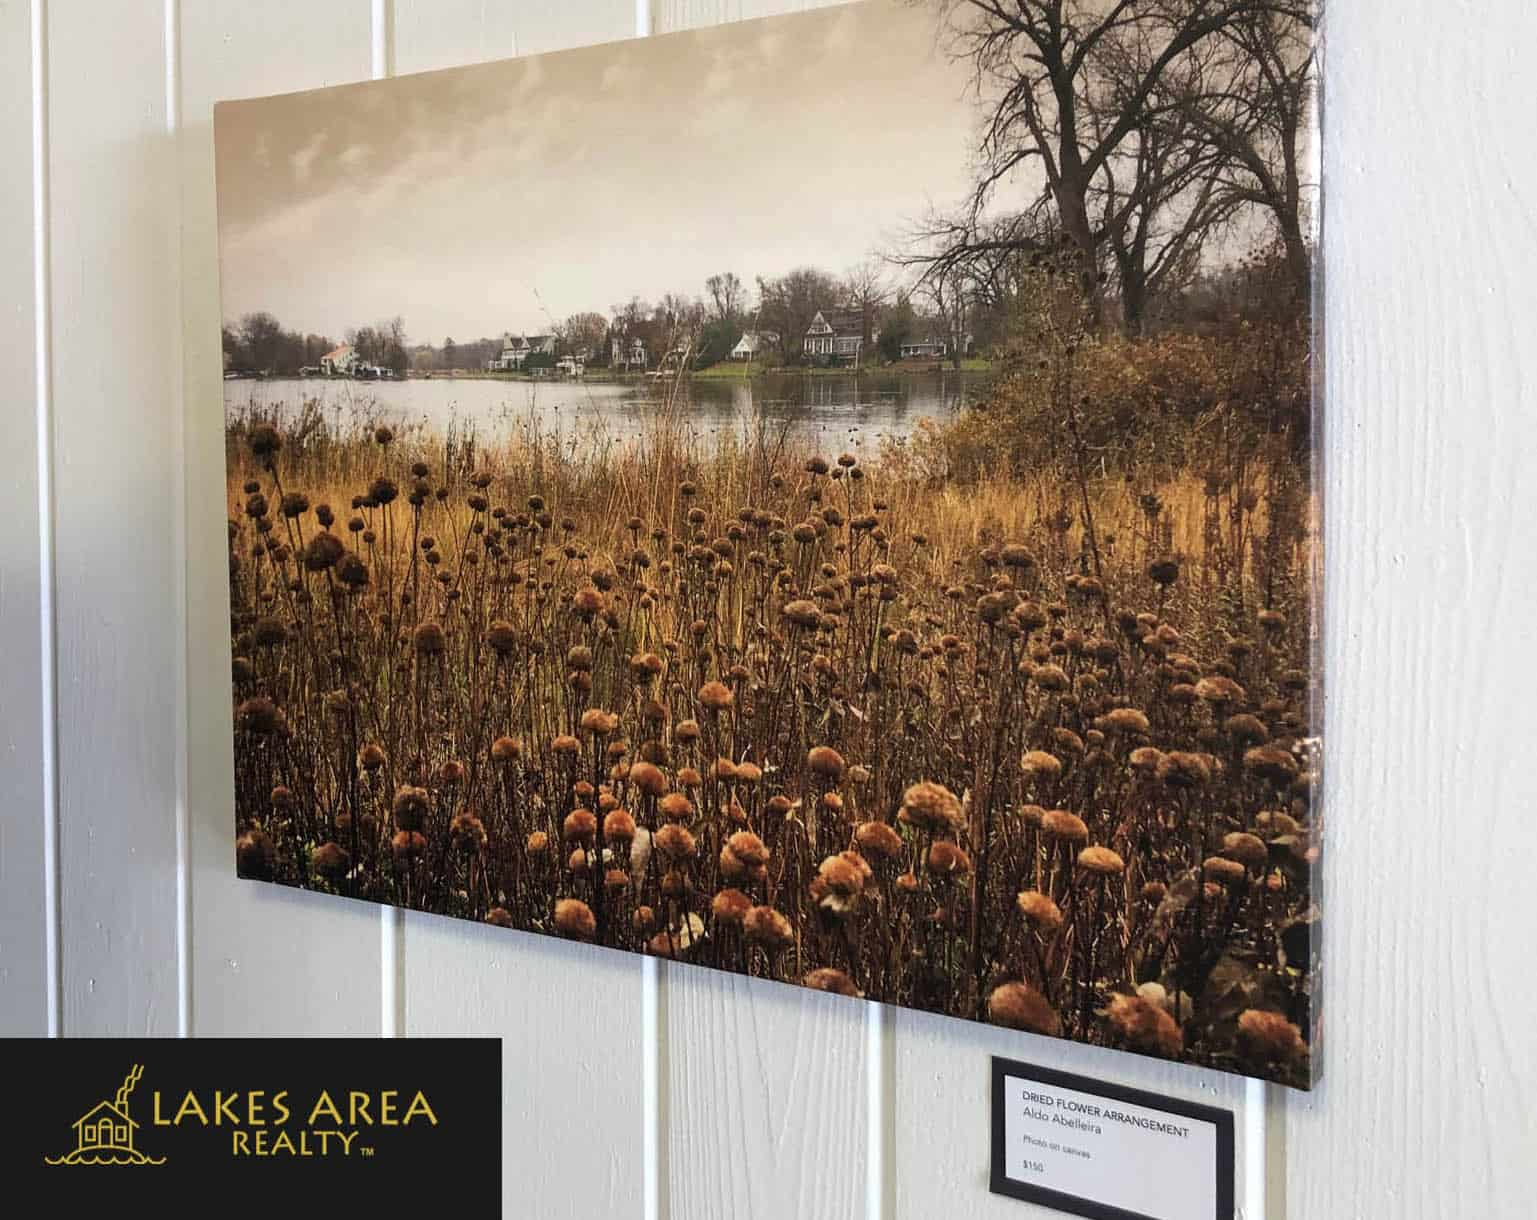 Gallery at Lakes Area Realty in Excelsior